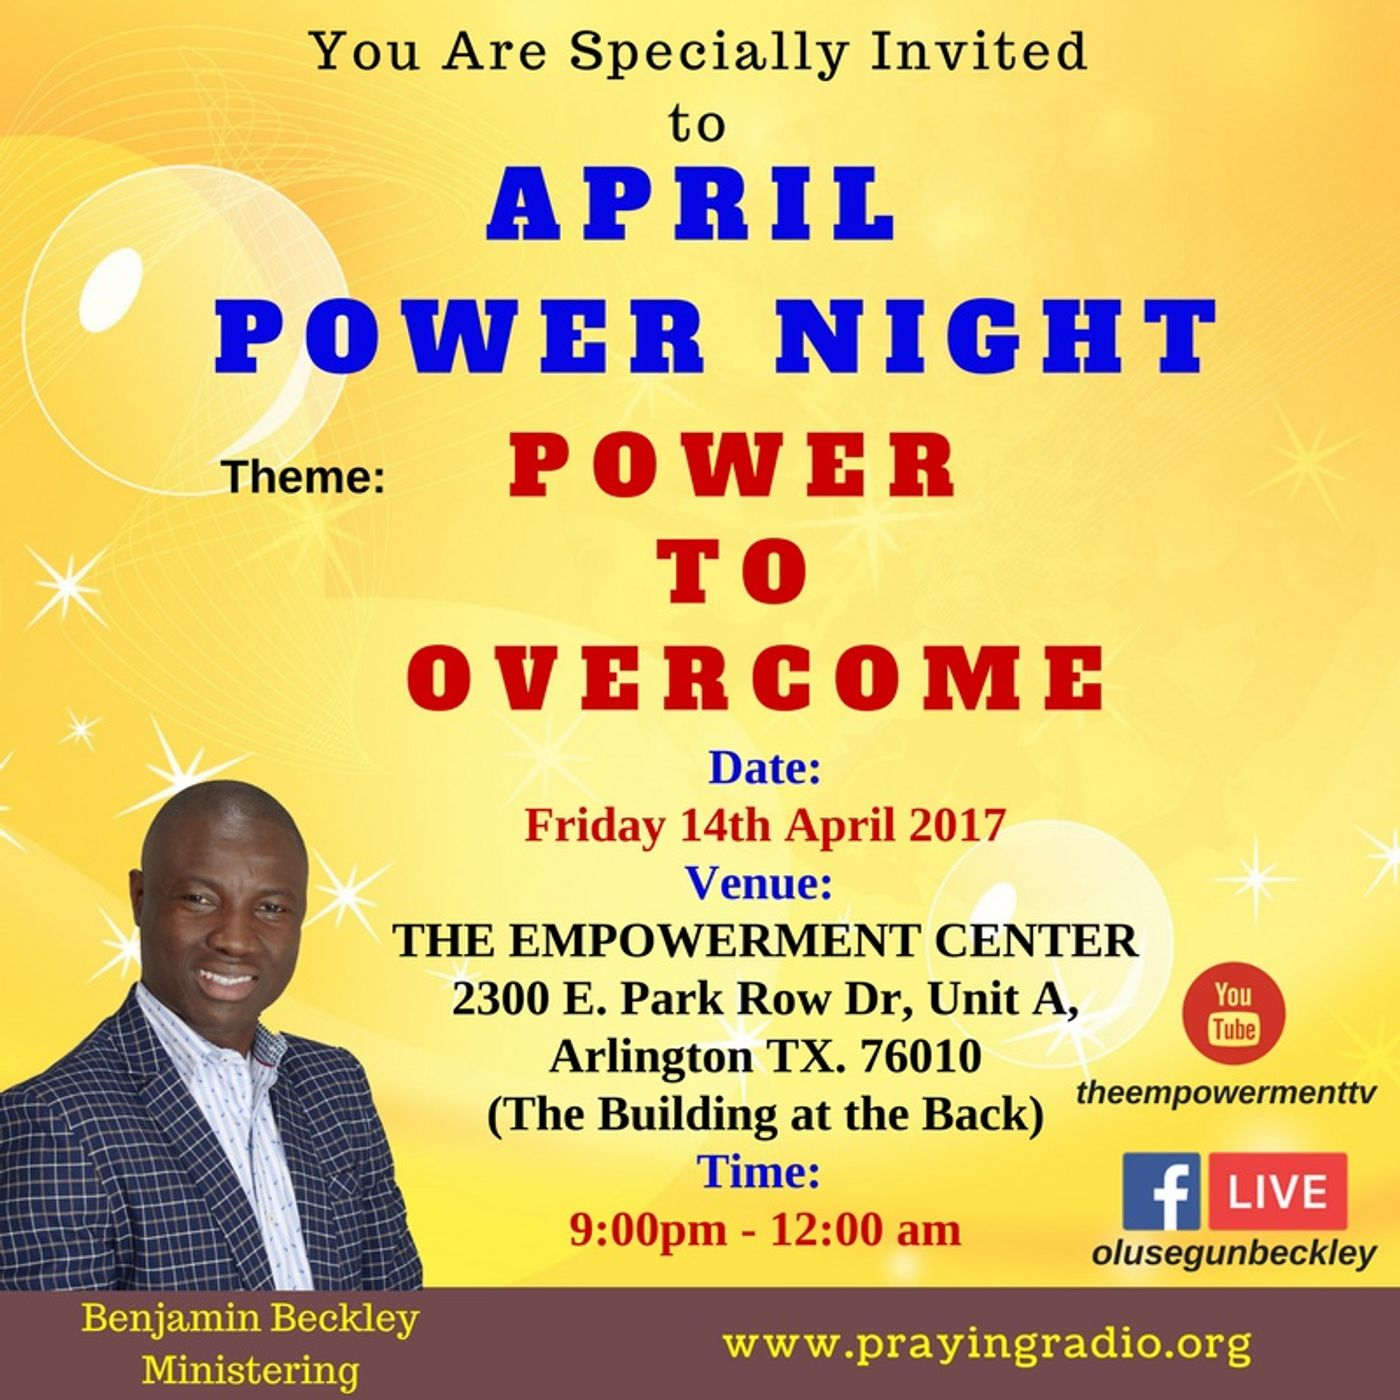 April Power Night - Power to Overcome